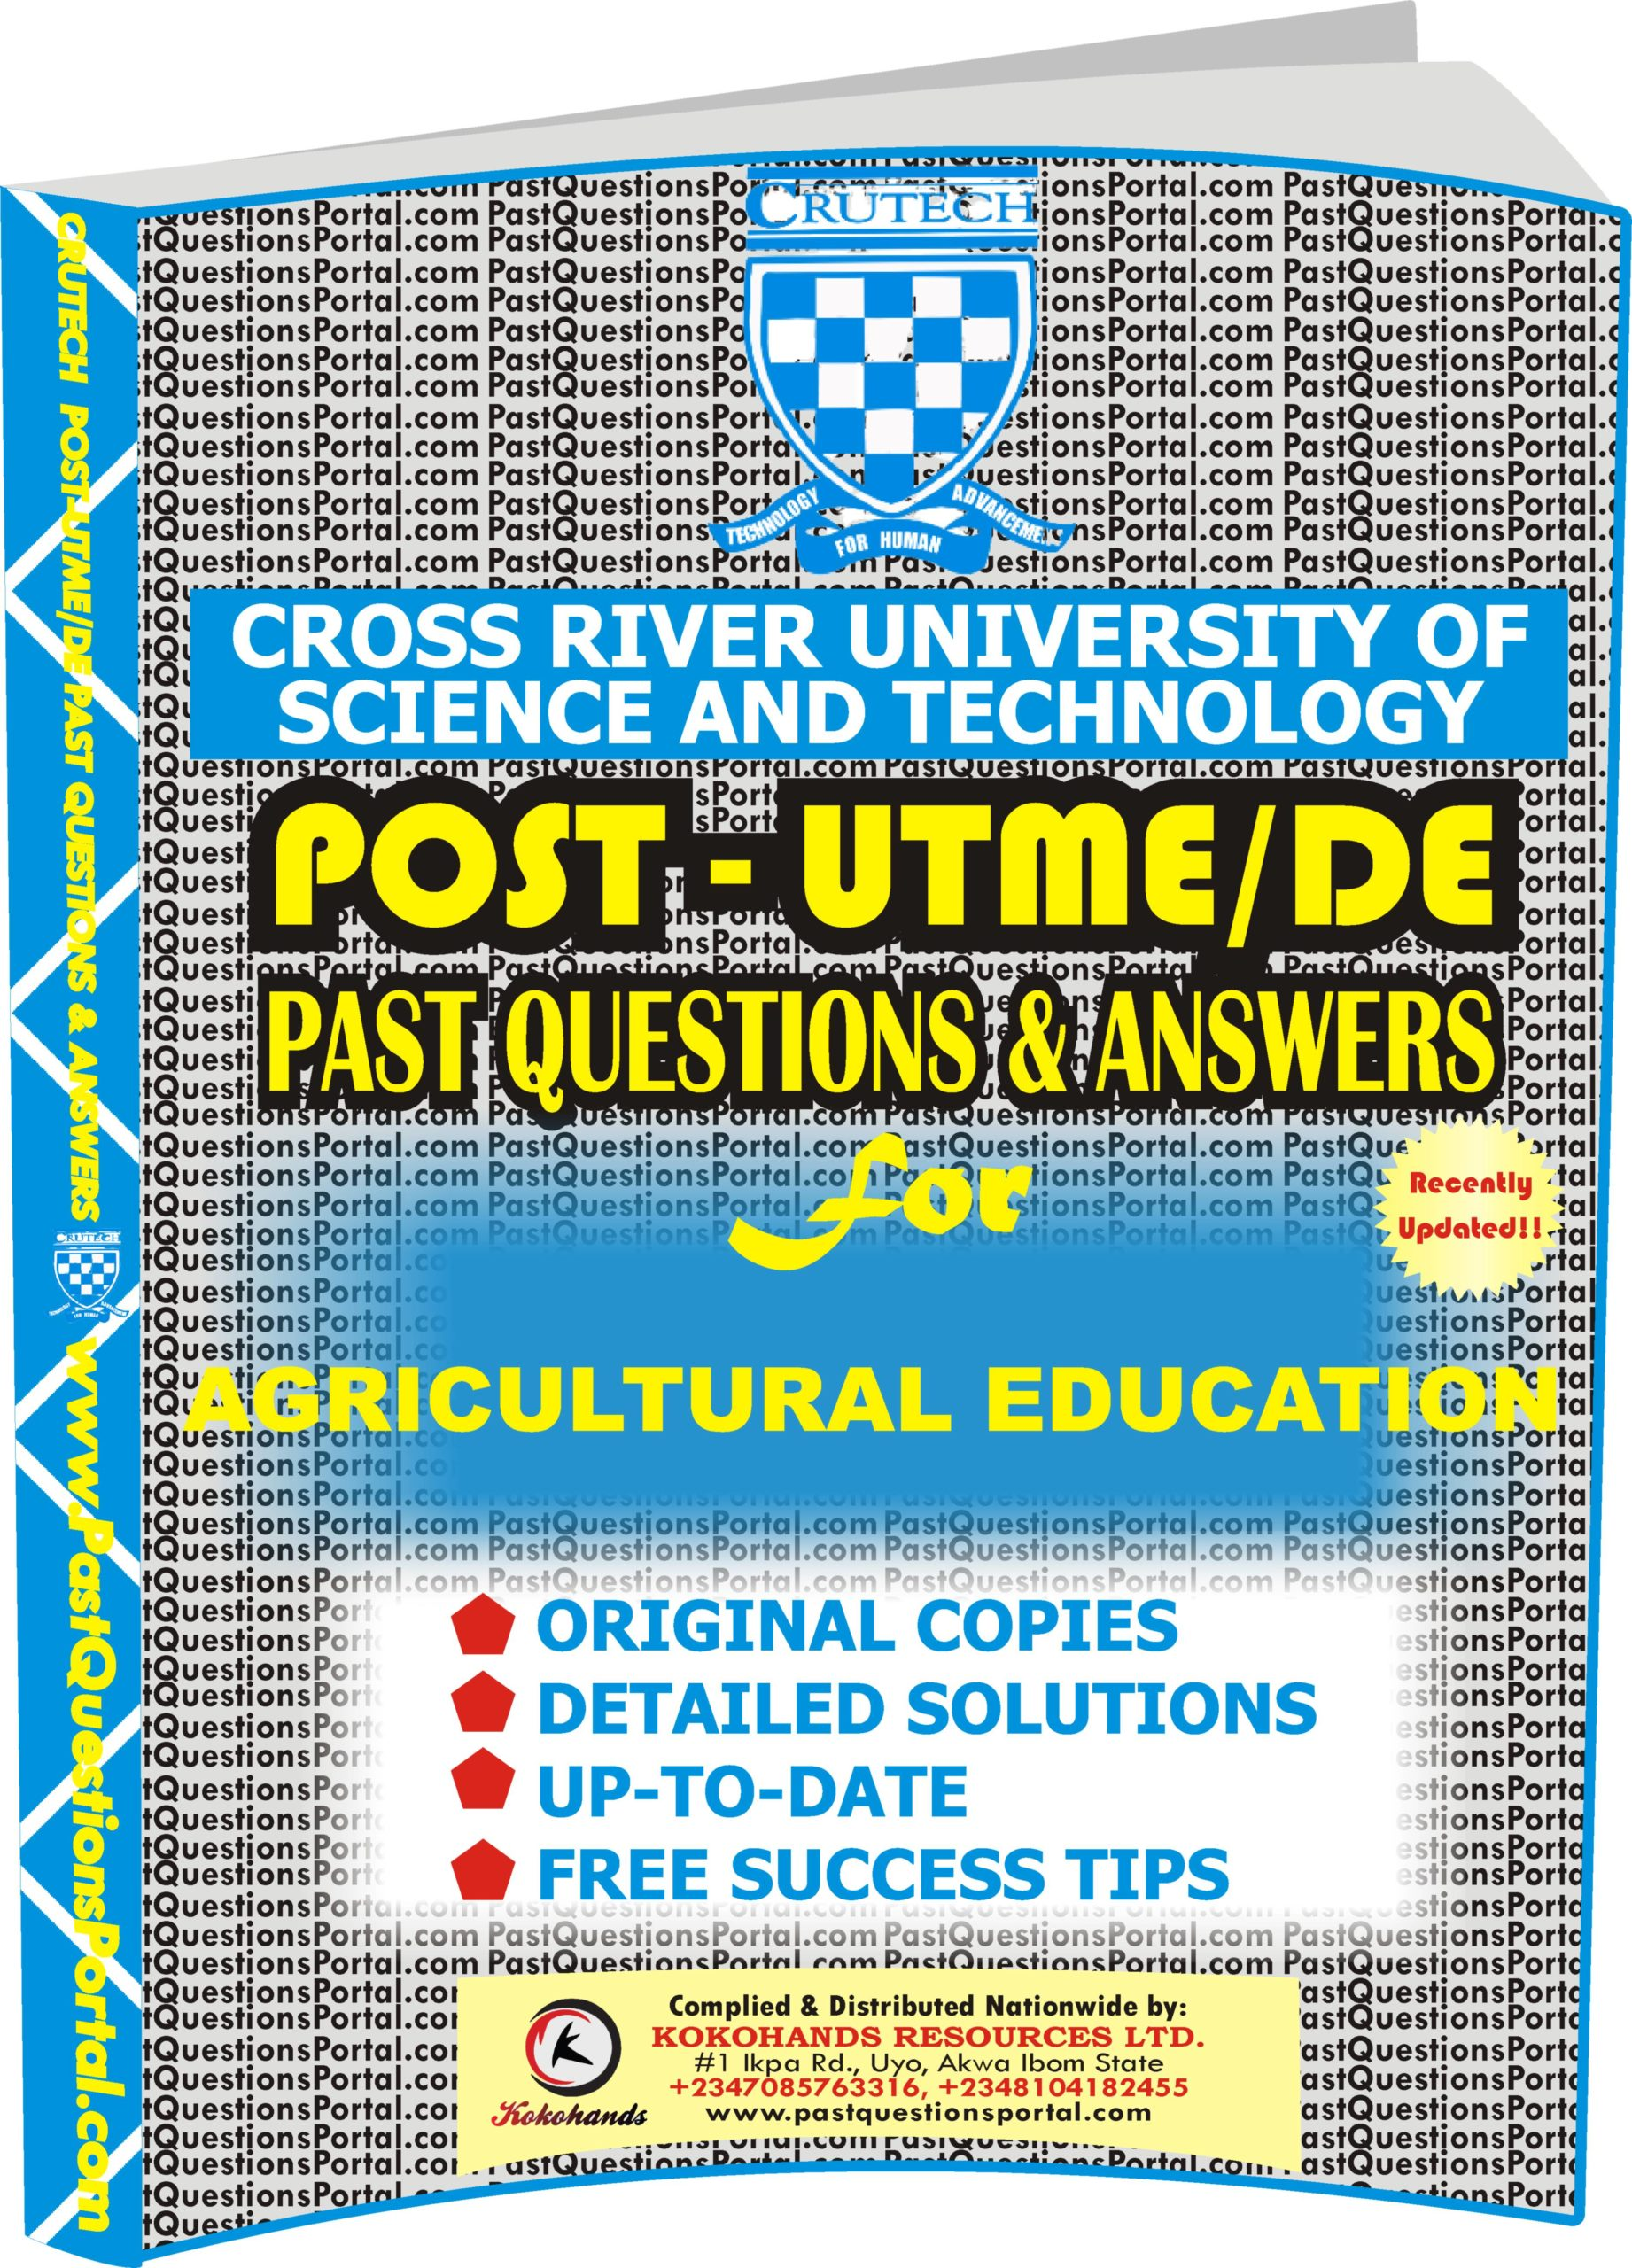 CRUTECH Post UTME Past Questions for AGRICULTURAL EDUCATION